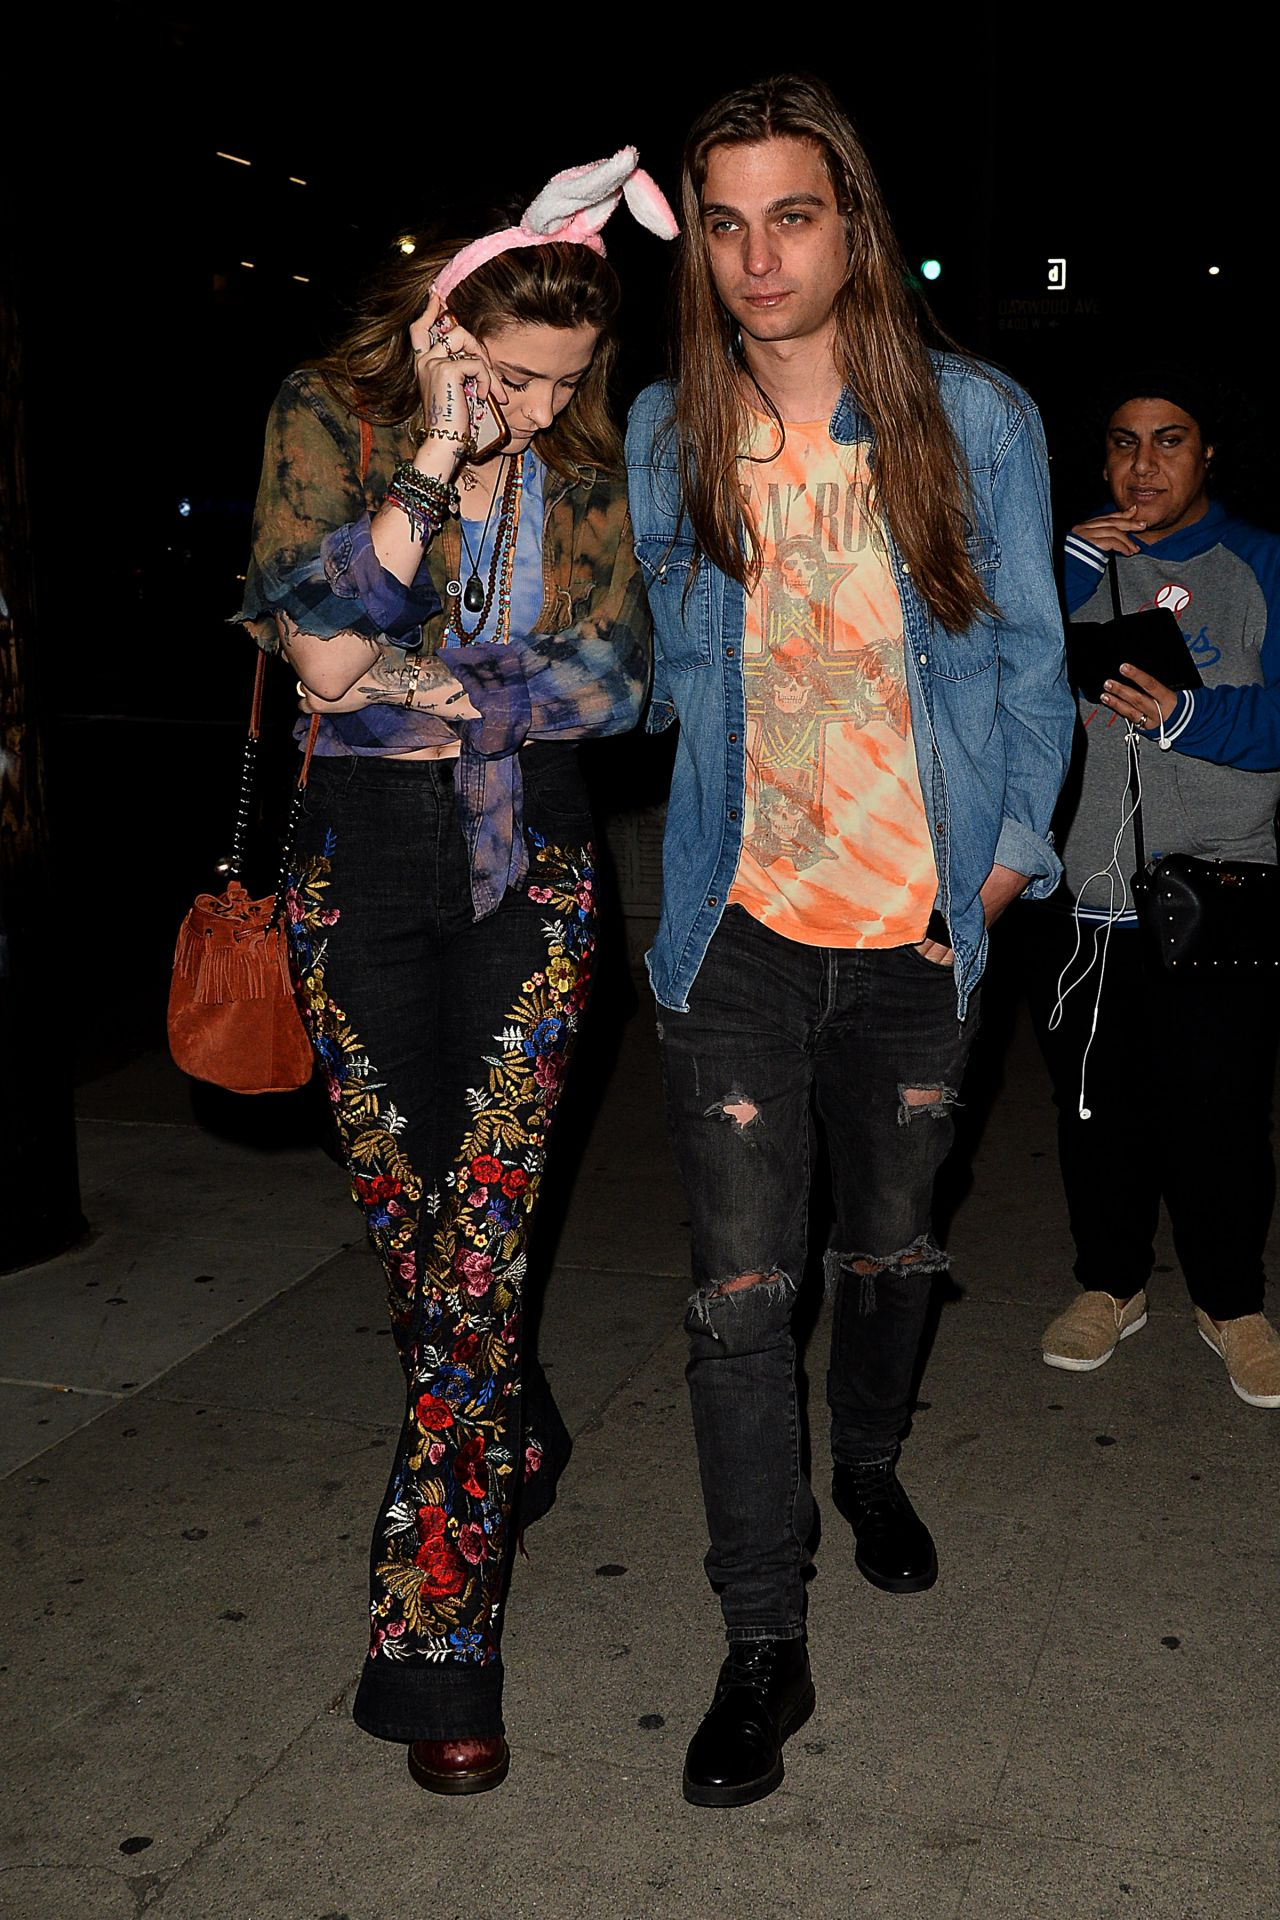 19 Stylish Fall Outfits Worth Copying: Paris Jackson Night Out Style 03/19/2019